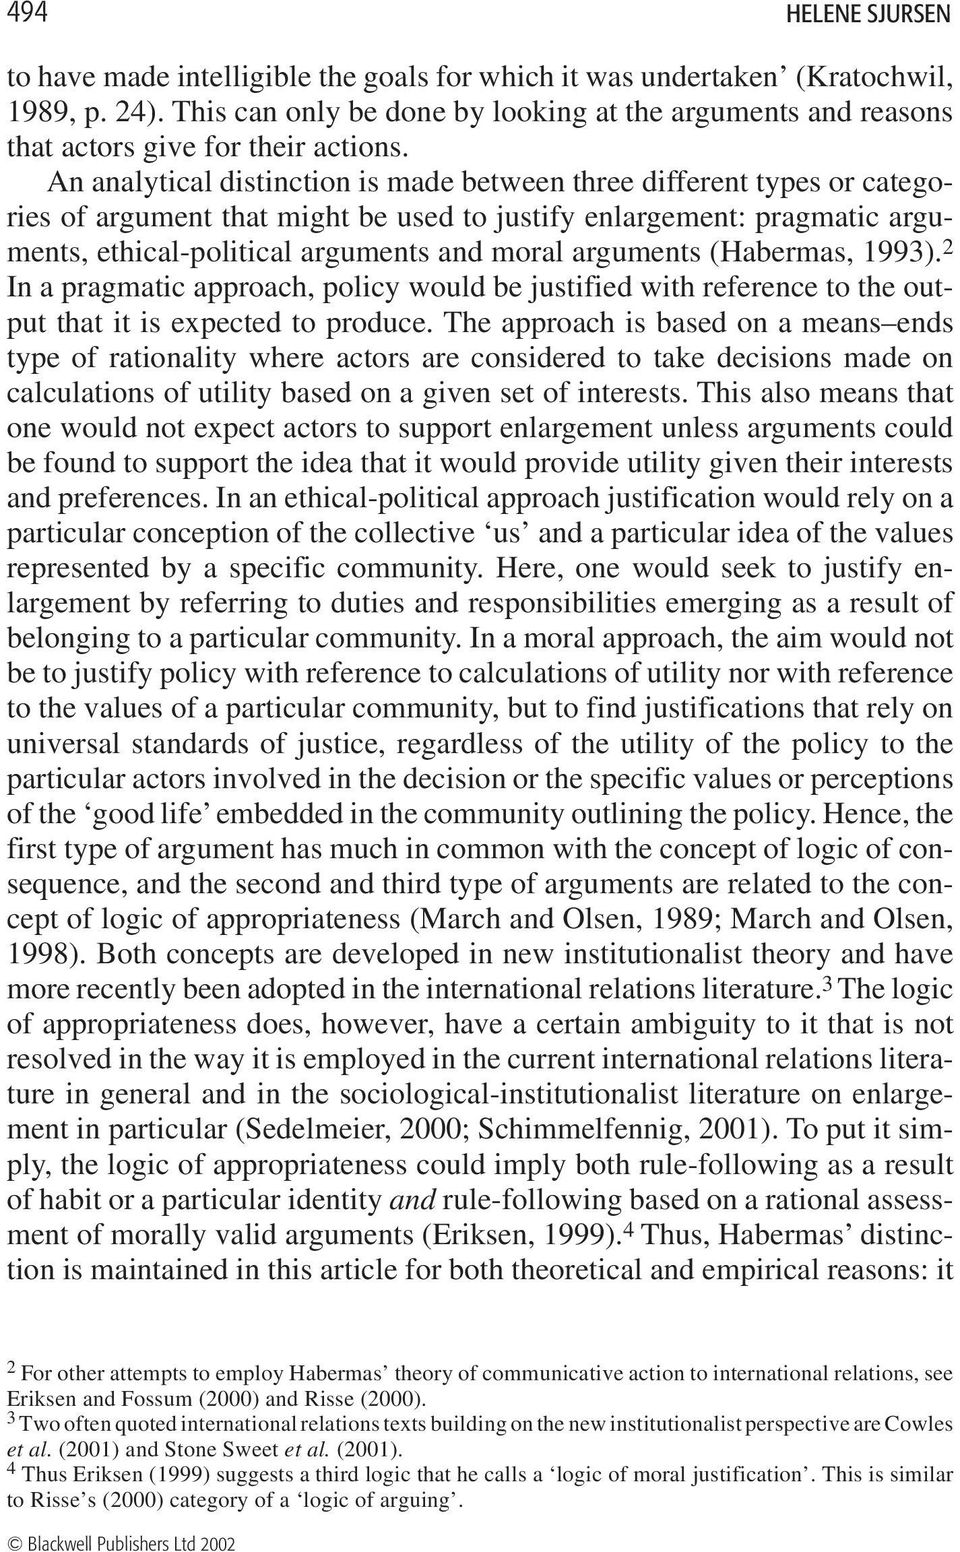 An analytical distinction is made between three different types or categories of argument that might be used to justify enlargement: pragmatic arguments, ethical-political arguments and moral